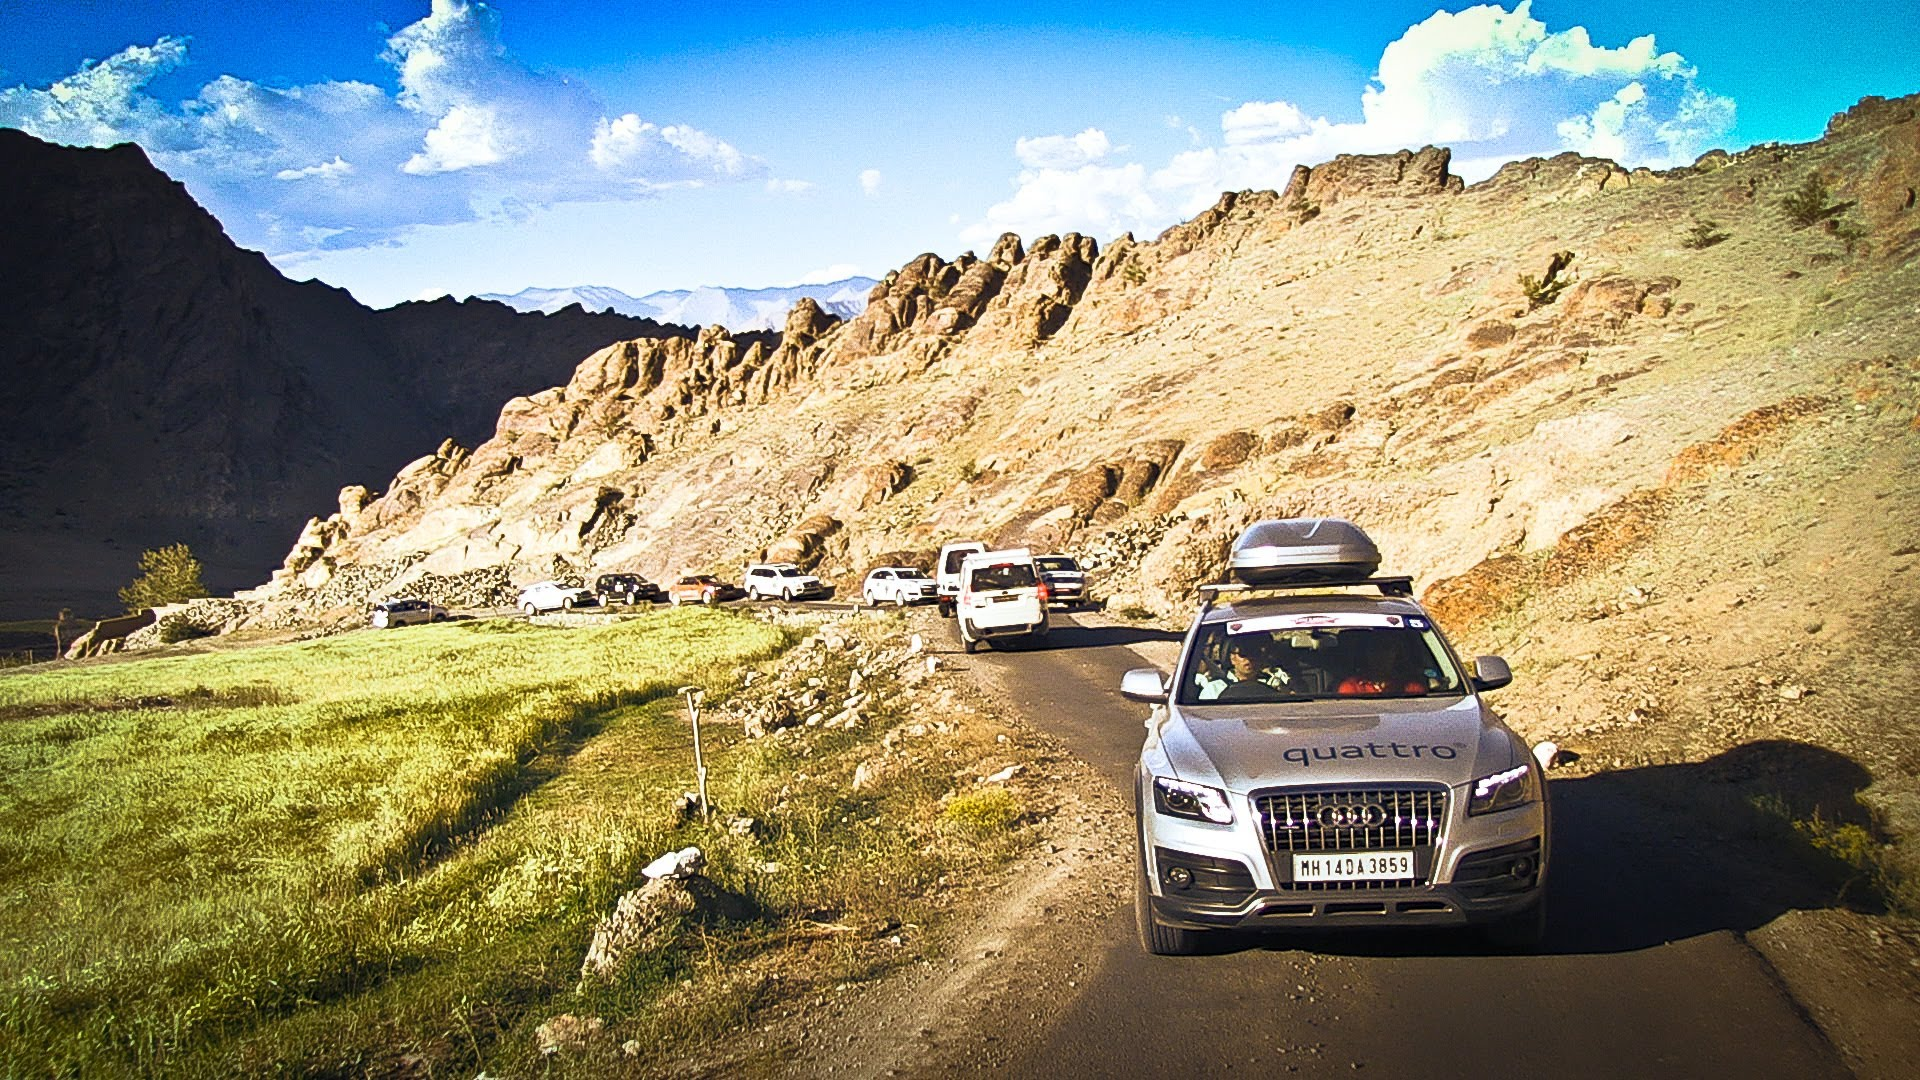 Enjoy Your Tour Via Ladakh Packages from Mumbai